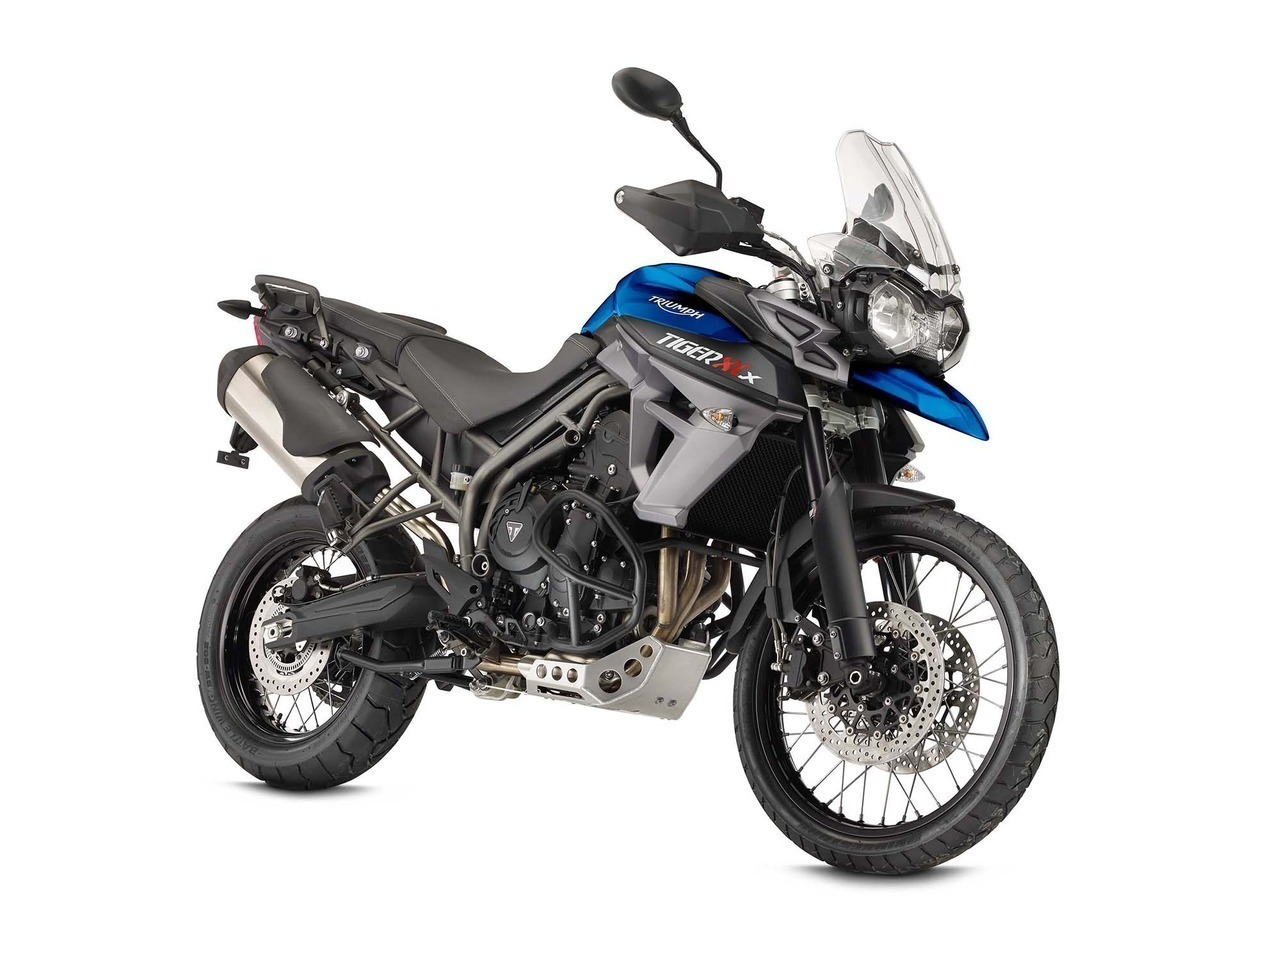 2015 Triumph TIGER 800 XCX ABS, motorcycle listing